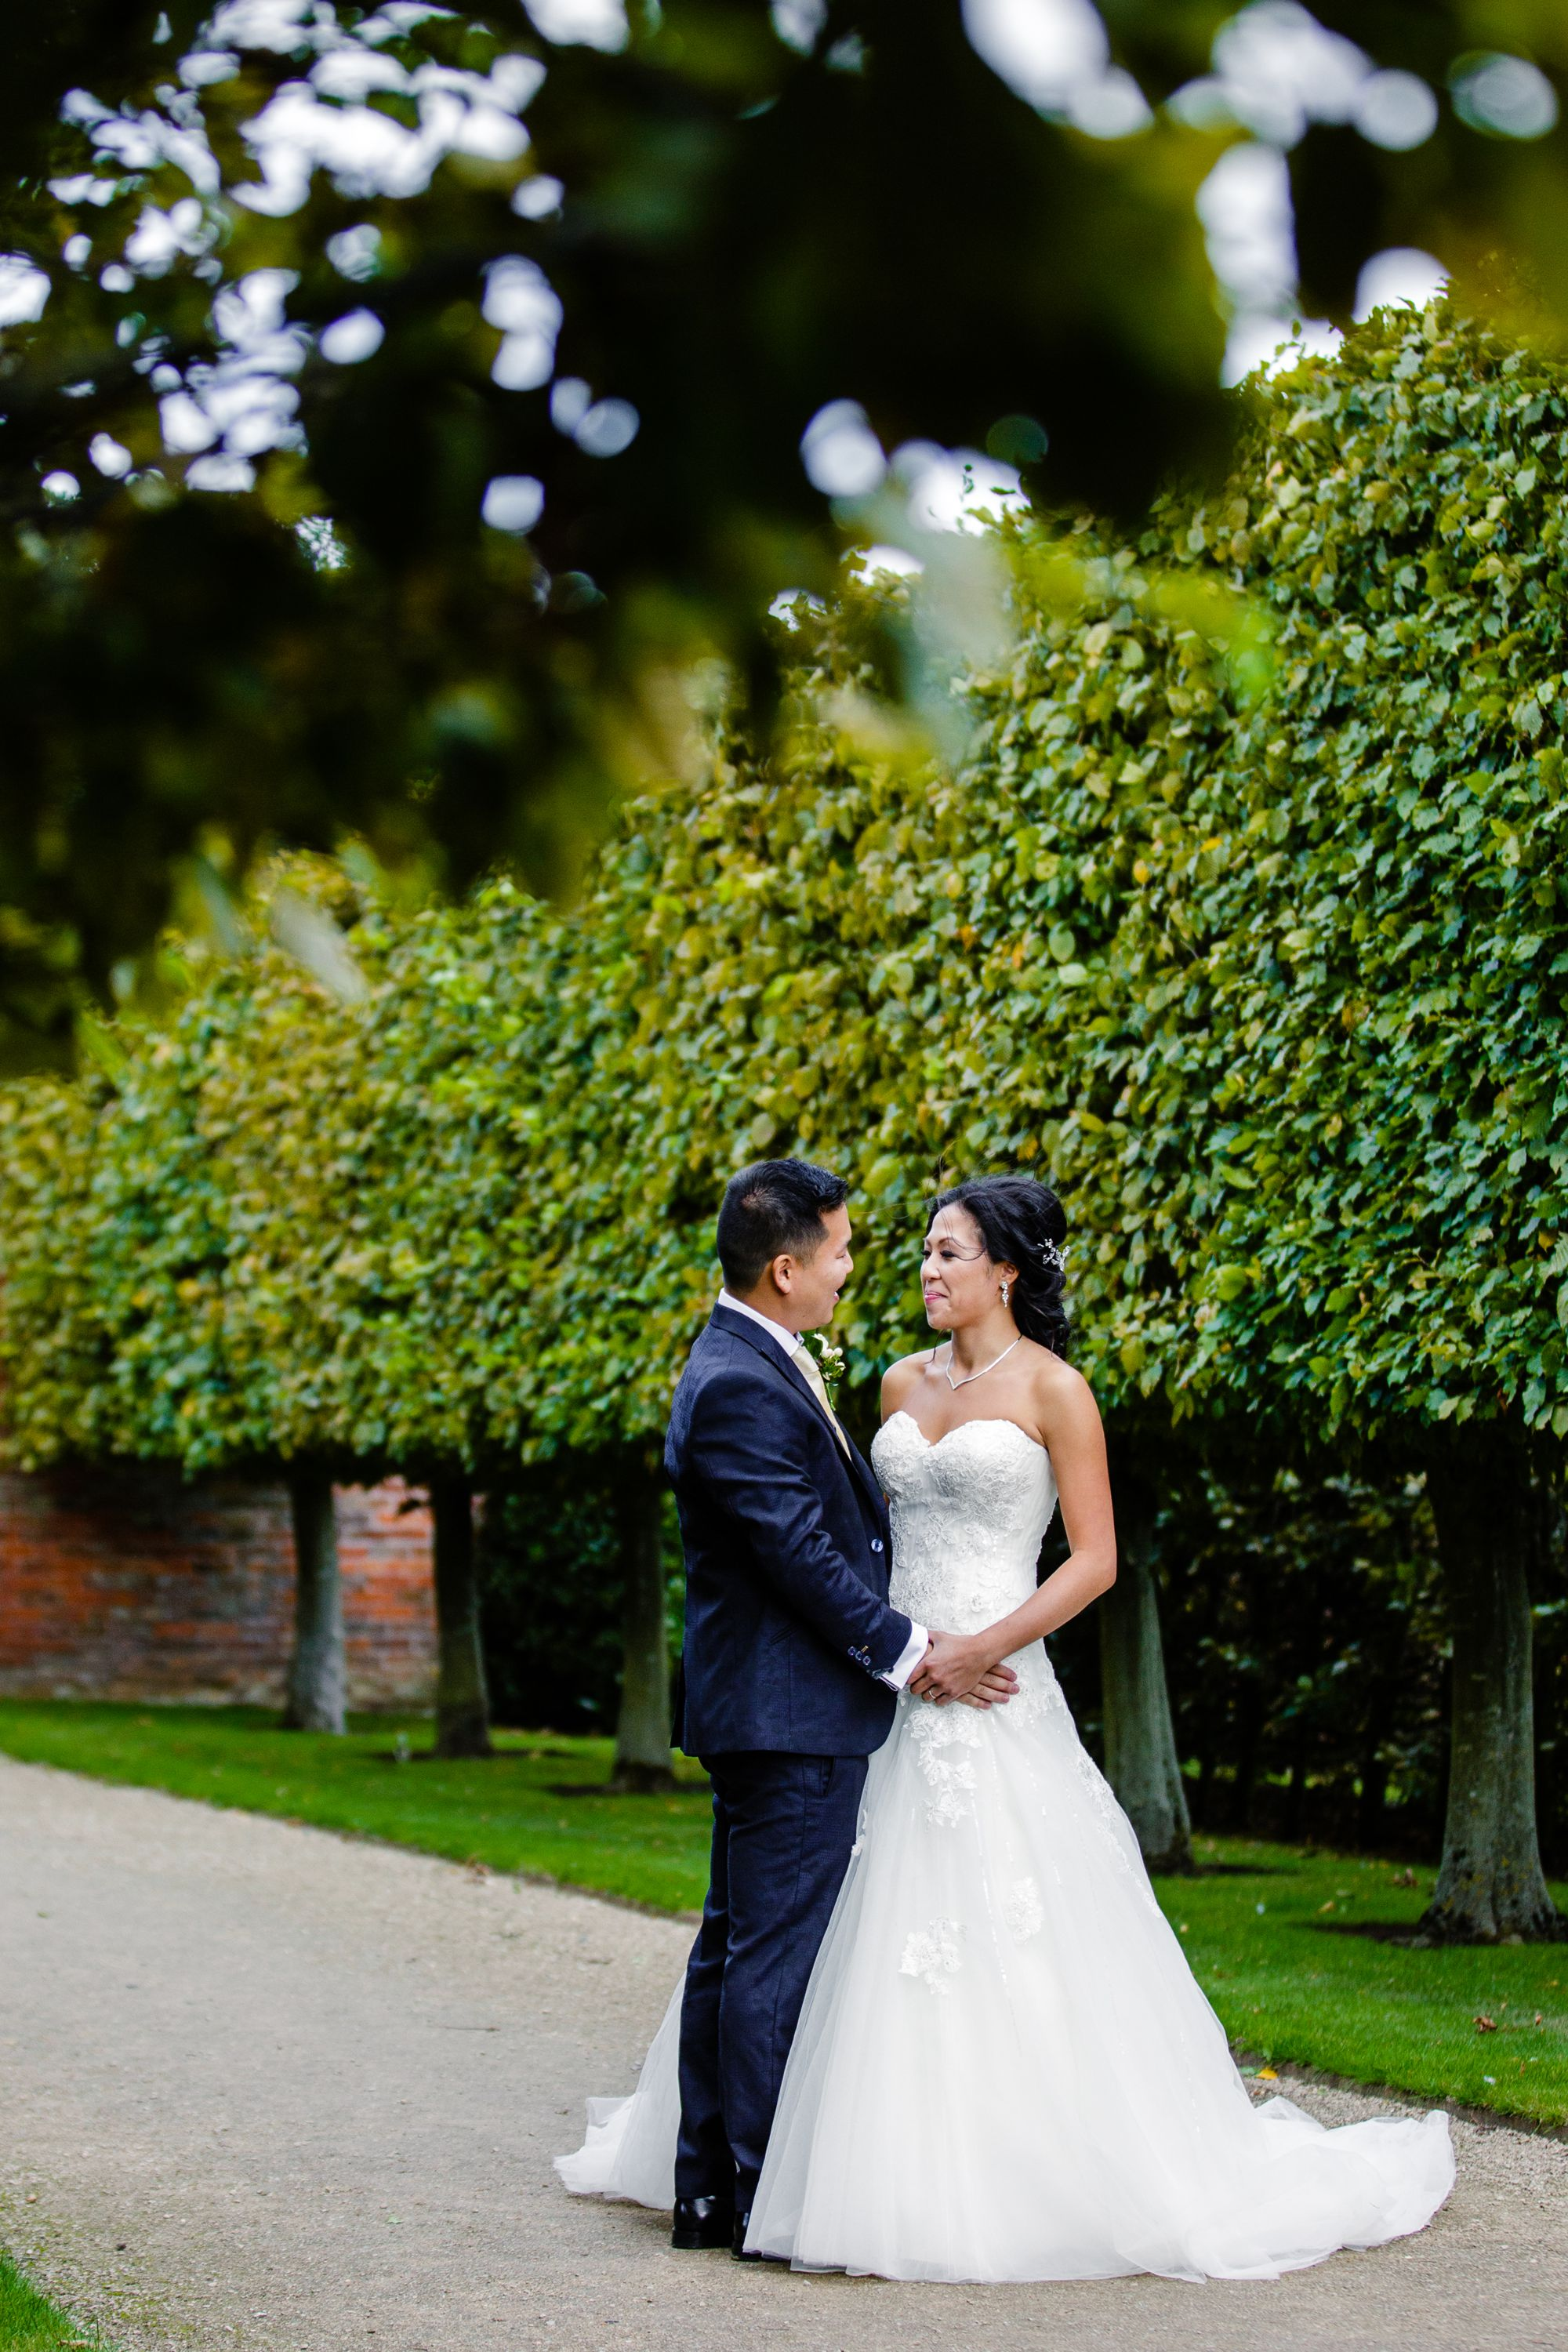 Combermere Abbey Cheshire Wedding Photographer-162.jpg